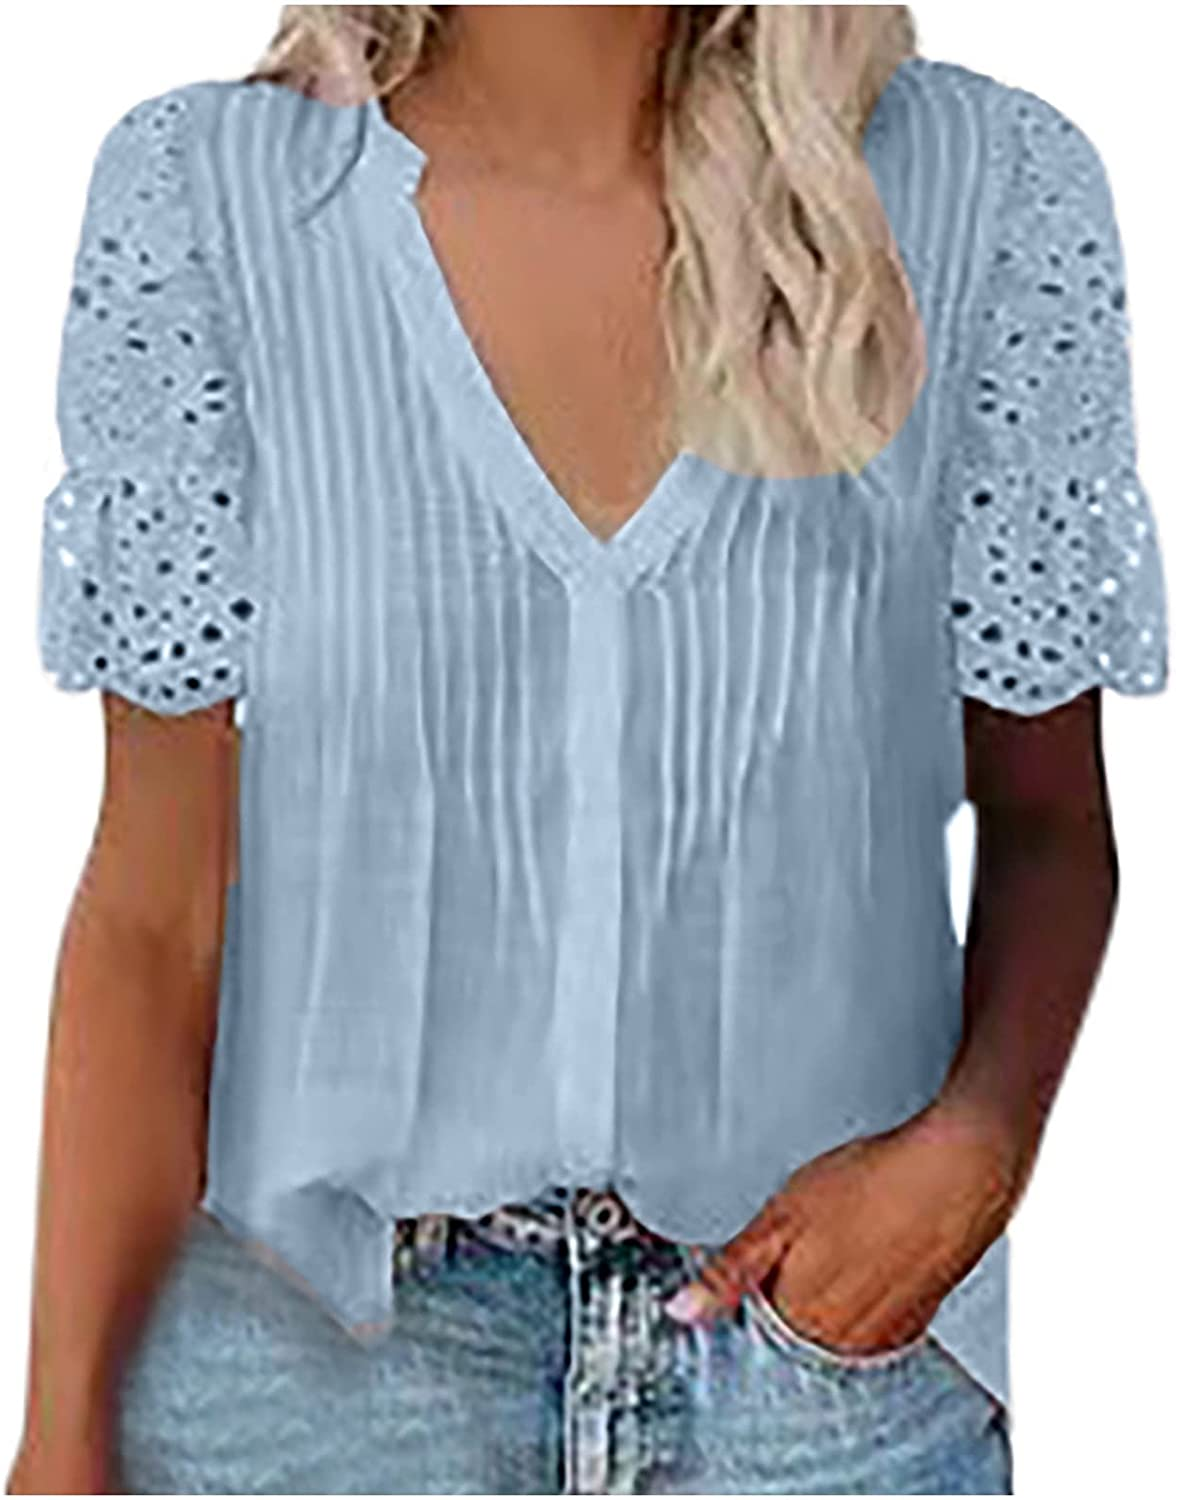 Women Solid Shirts V Limited Special Price Neck Blouse Sleeve Casual Ranking integrated 1st place Tops Lace Short T